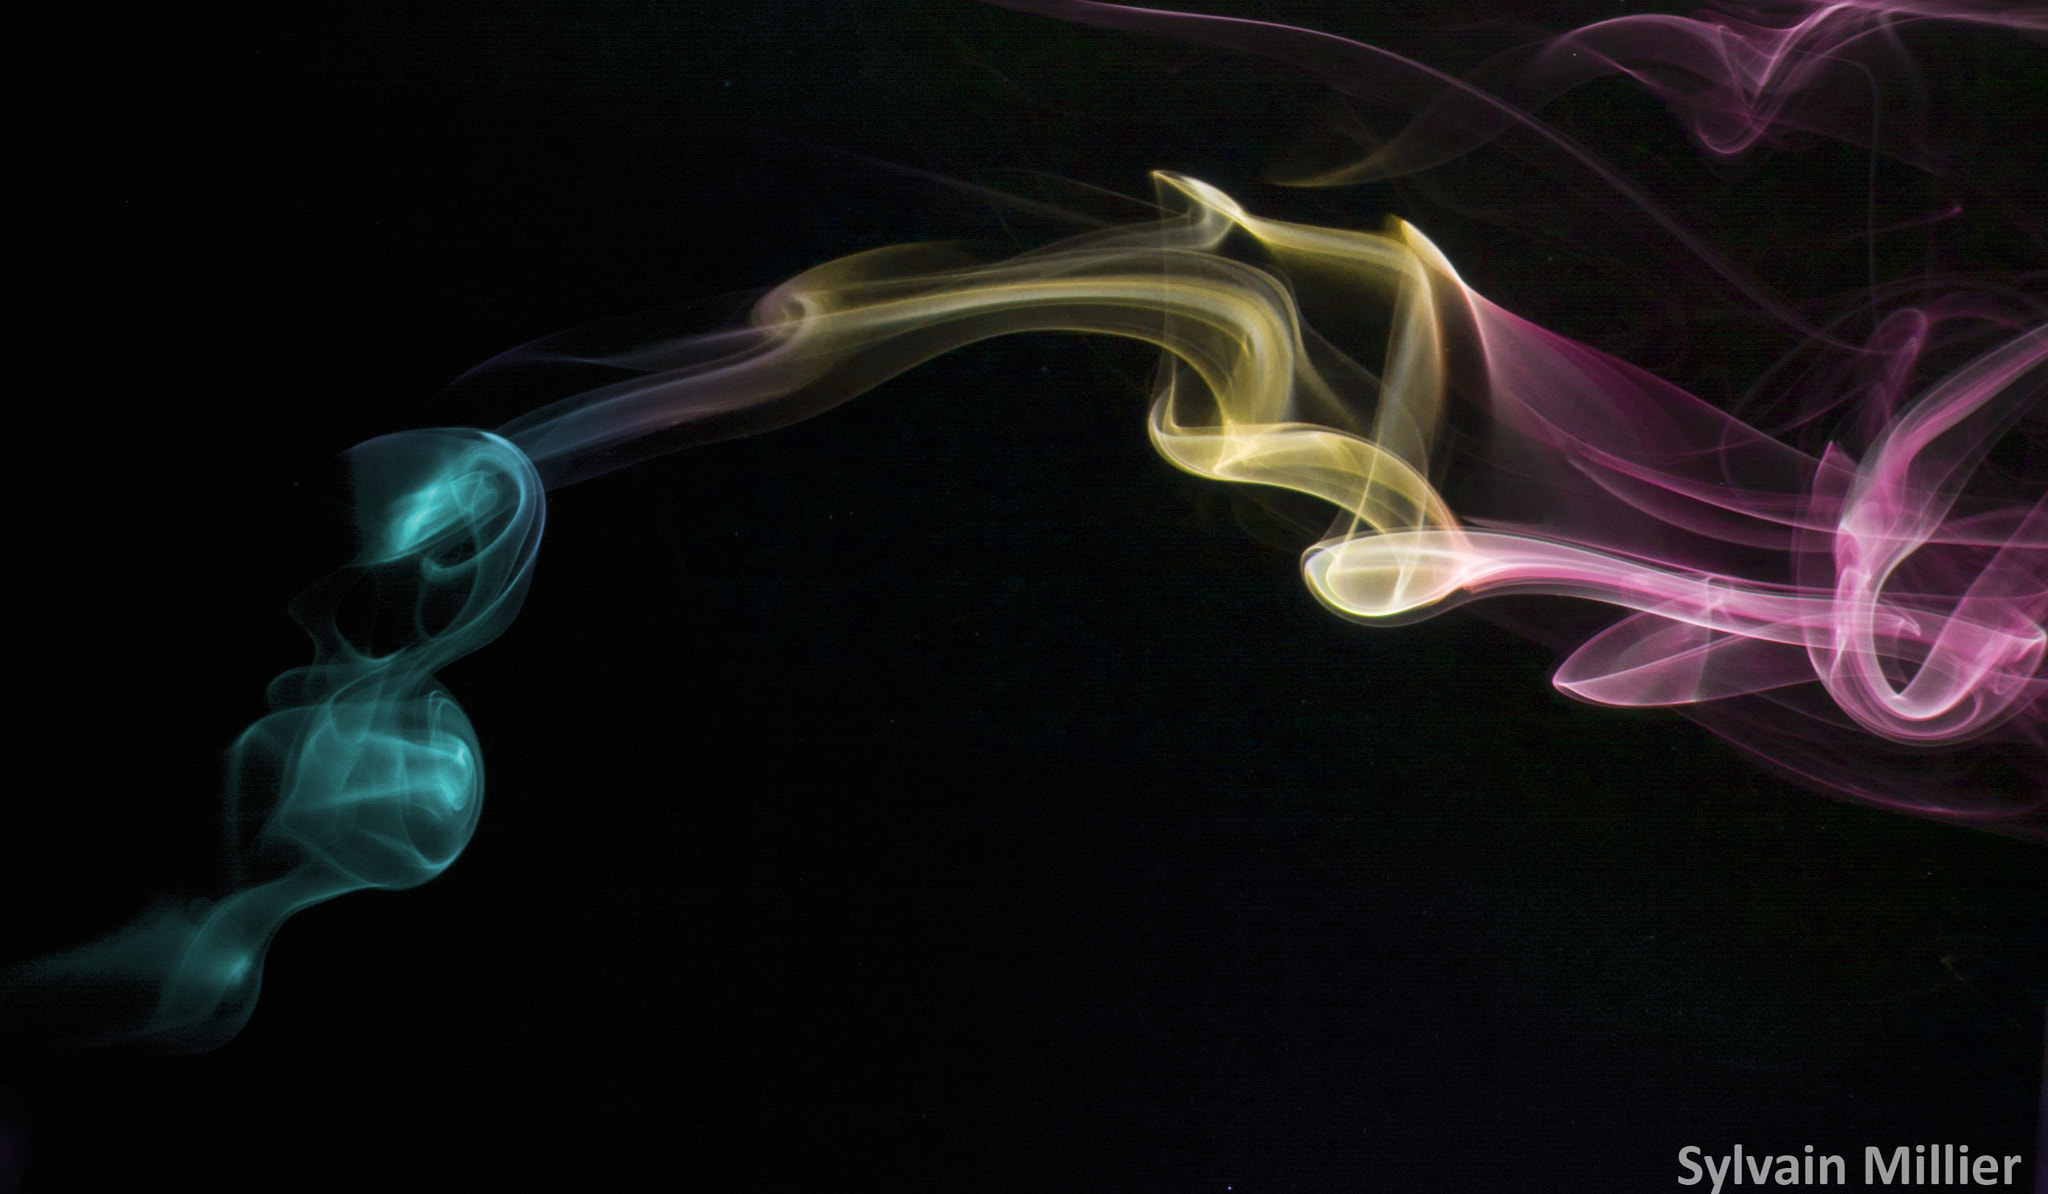 Photograph Smoke flame by Sylvain Millier on 500px